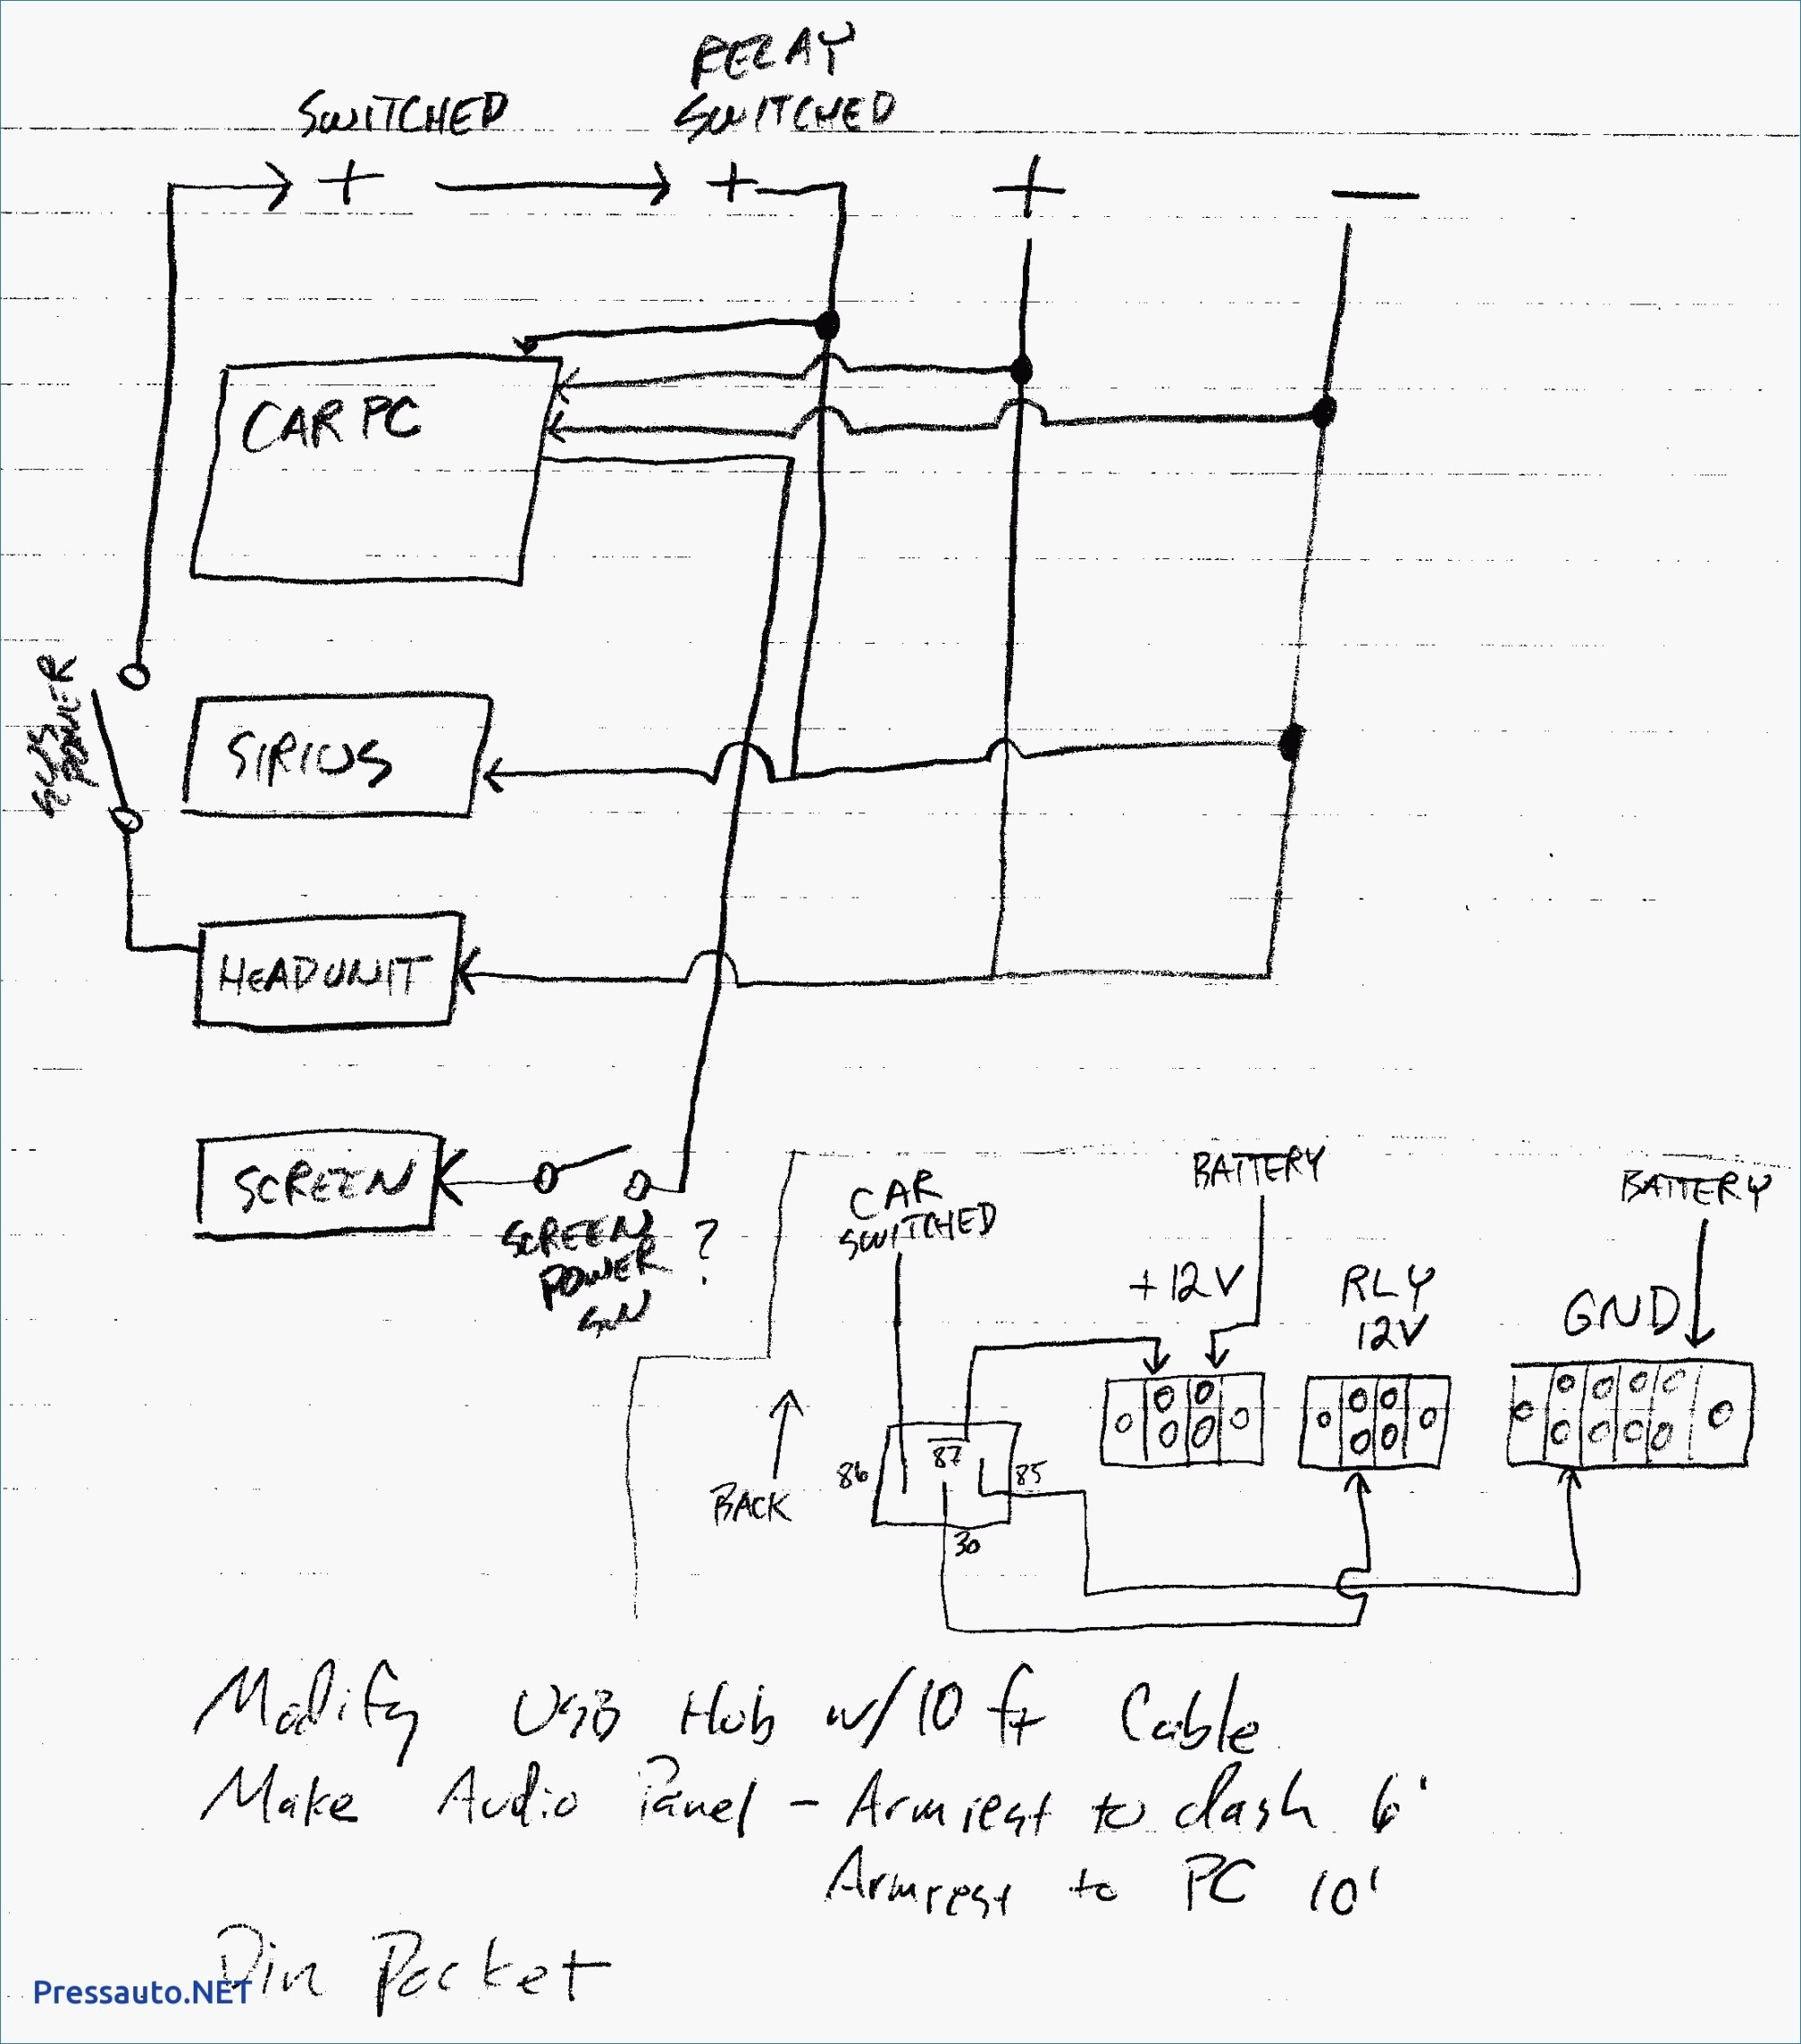 hight resolution of imperial deep fryer wiring diagram free wiring diagramimperial deep fryer wiring diagram imperial deep fryer wiring